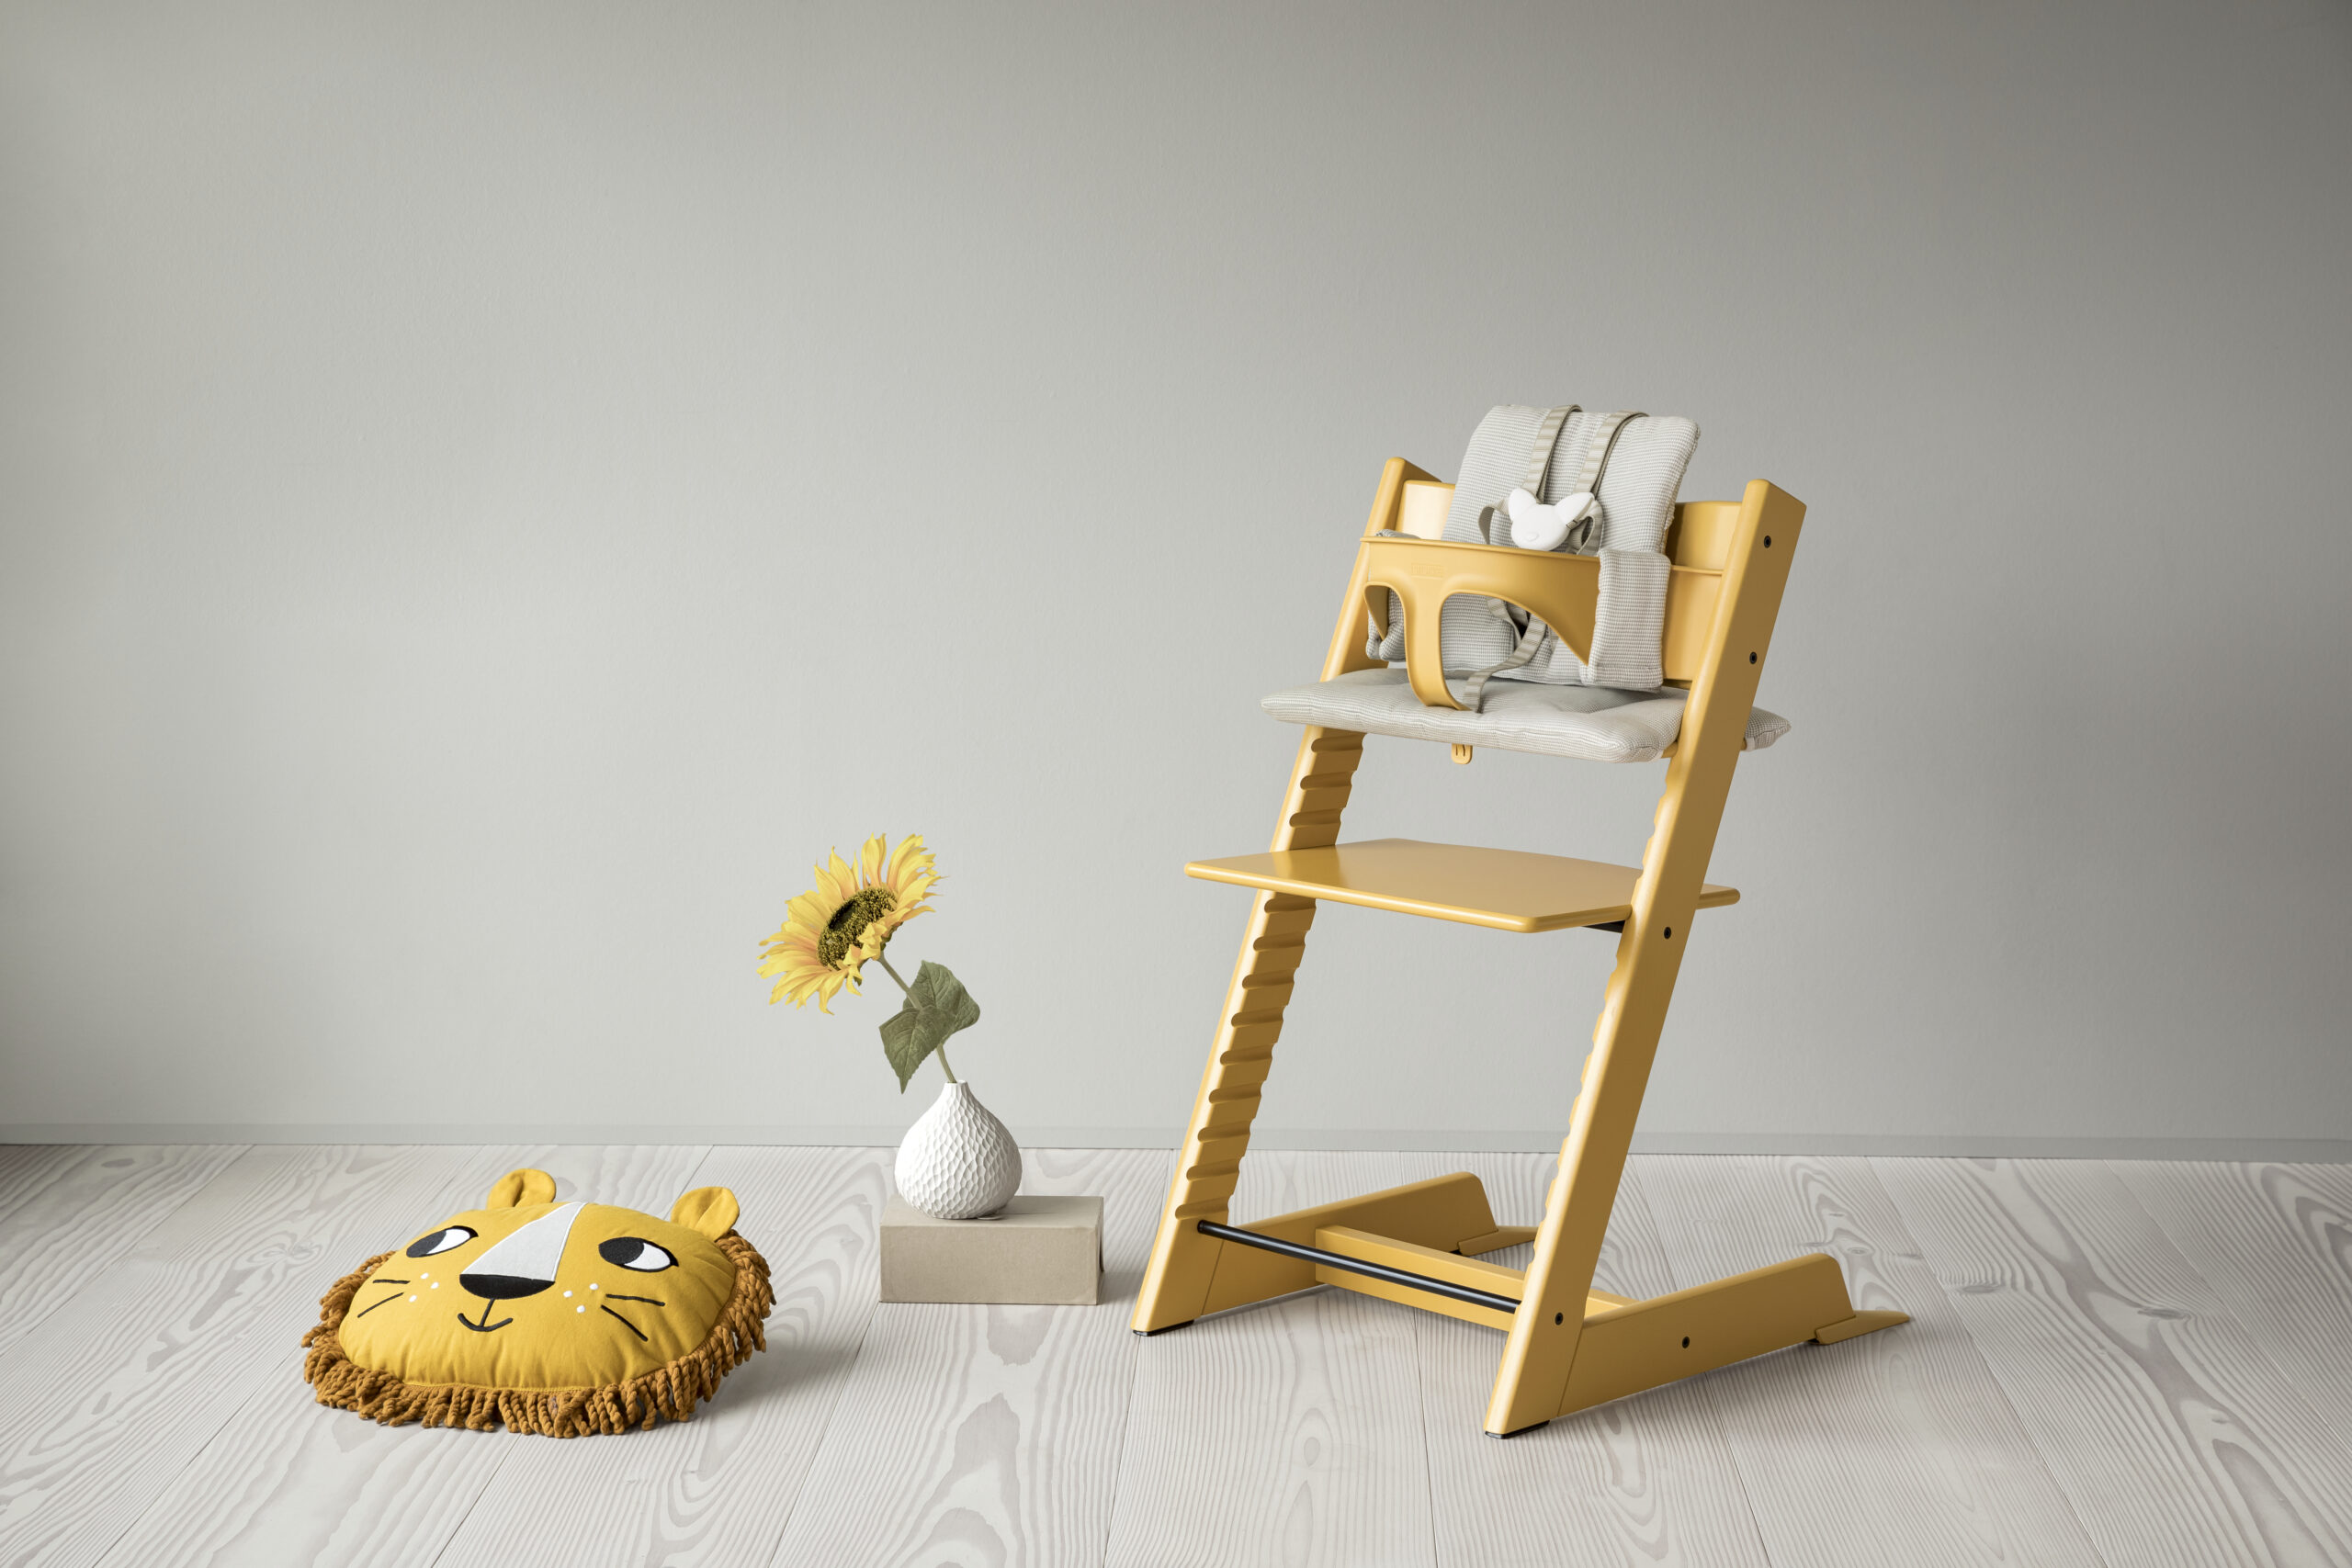 Brand New Sunflower Yellow Tripp Trapp High Chair Now Available at Blossom